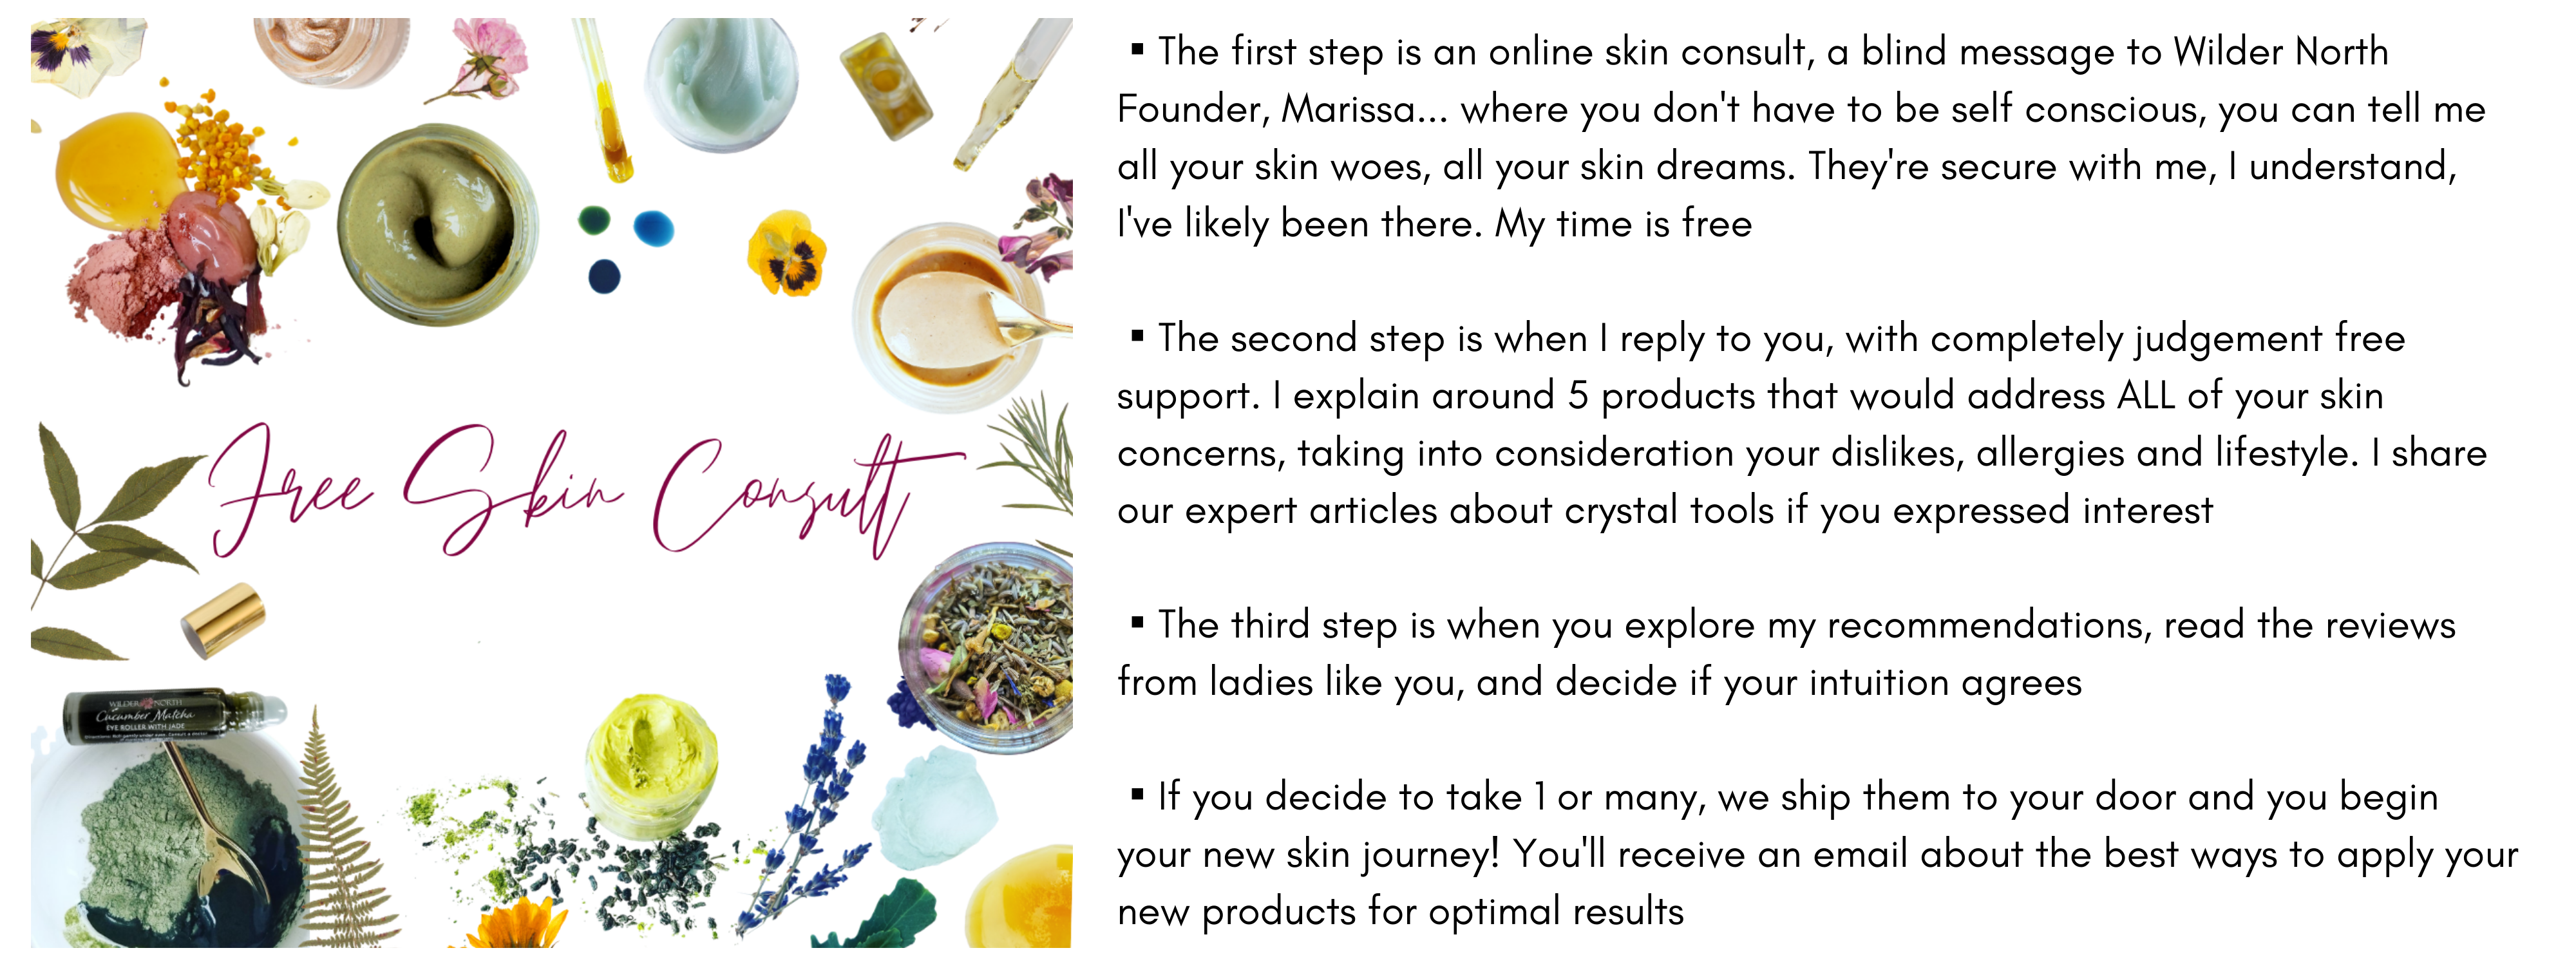 -the-first-step-is-an-online-skin-consult-a-blind-message-to-me-where-you-don-t-have-to-be-self-conscious-you-can-tell-me-all-your-skin-woes-all-your-skin-dreams.-they-re-secure-with-me-i-understand-i-v-2-.png